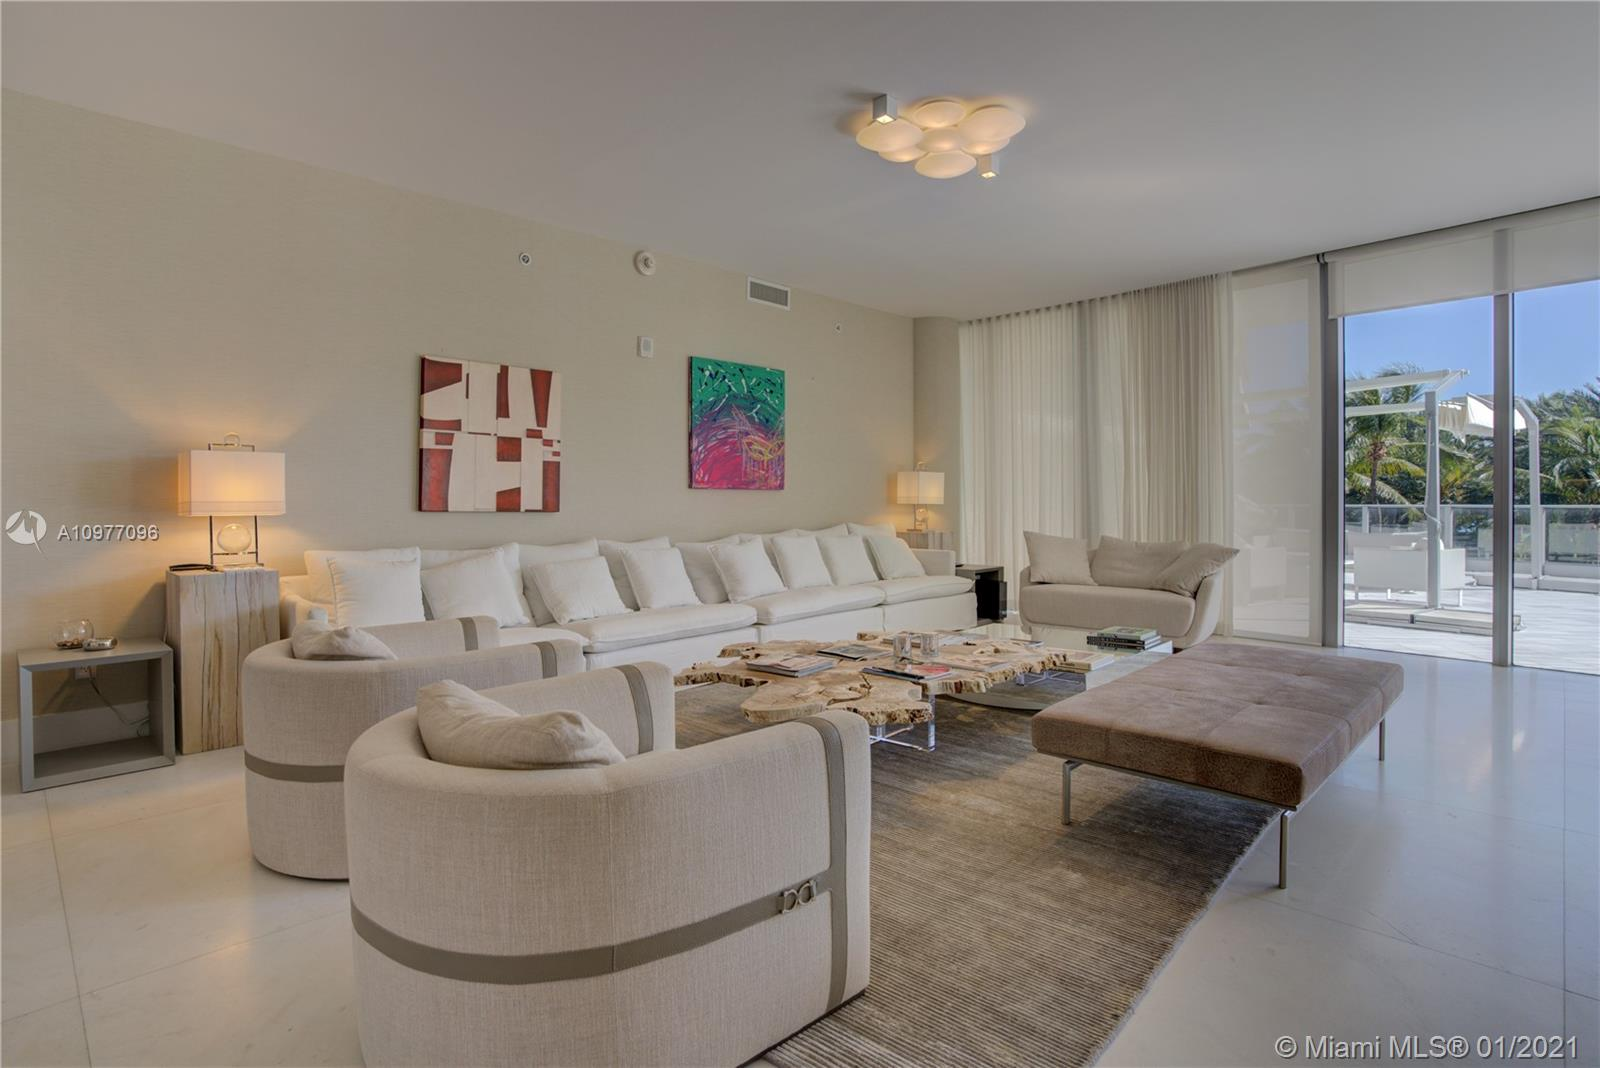 Gorgeous 3 Bedroom 3.5 Bath Corner Residence at Marea Condo in Miami Beach. Unit features private elevator that opens up into a 2,332 interior sqft Residence with an additional Massive Oversized 1,992 sqft Terrace. Beautifully Furnished by Artifact, Italian Kitchen Cabinetry by ItaliKraft, Wolf/Subzero Appliances, 10ft ceilings, and Master Bath designed by Yabu Pushelberg. Only 30 Residences in this Boutique building where Luxury meets Art. It is truly One of a Kind! Incredible Amenities with 24hr Security, Rooftop Pool, Exercise Room and Award Winning Restaurant. Amazing location walkable to the Beach and many shops and Restaurants.  Call LA for showings.